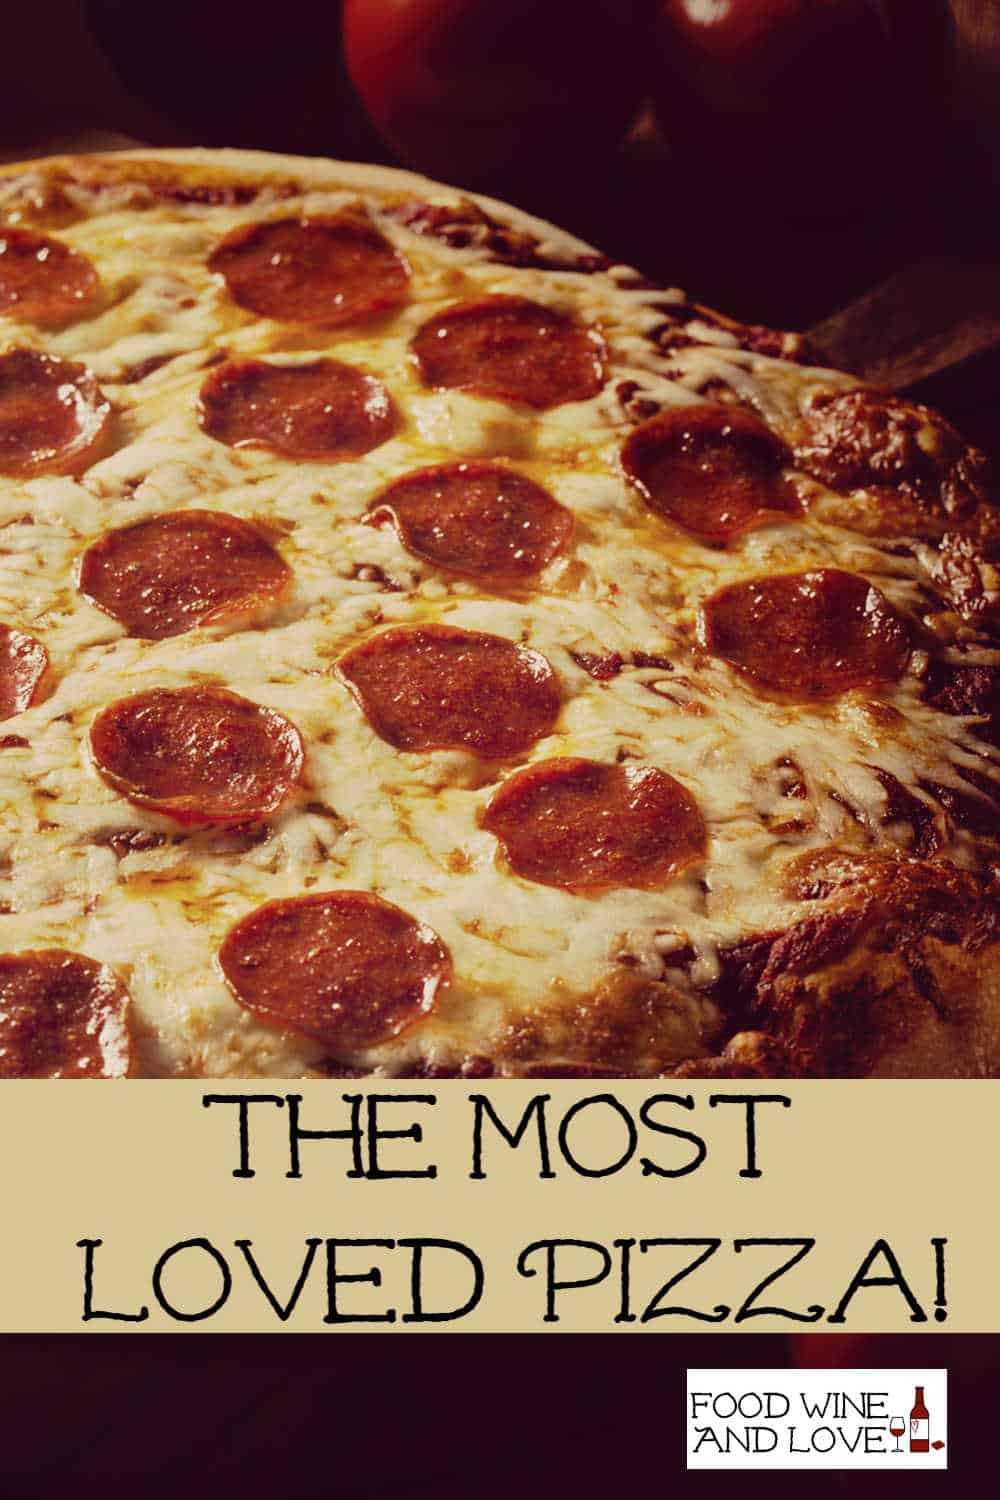 The Most Loved Pizza